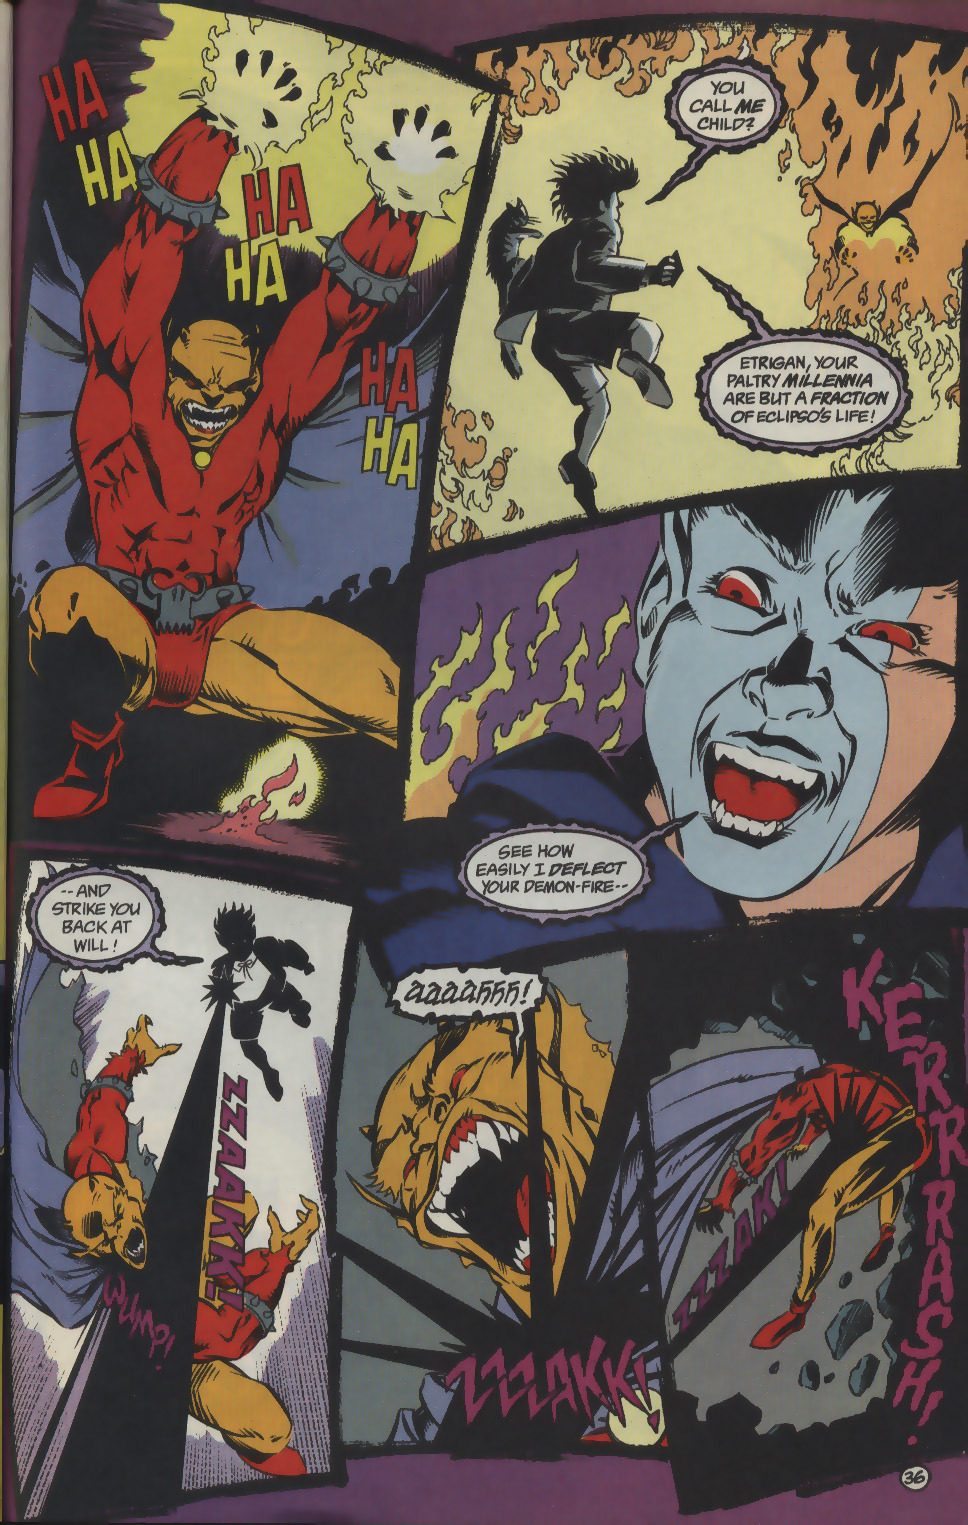 Eclipso manages to posses Klarion this time in an unrelated issue to the above scans. Here Etrigan takes quite a few blasts